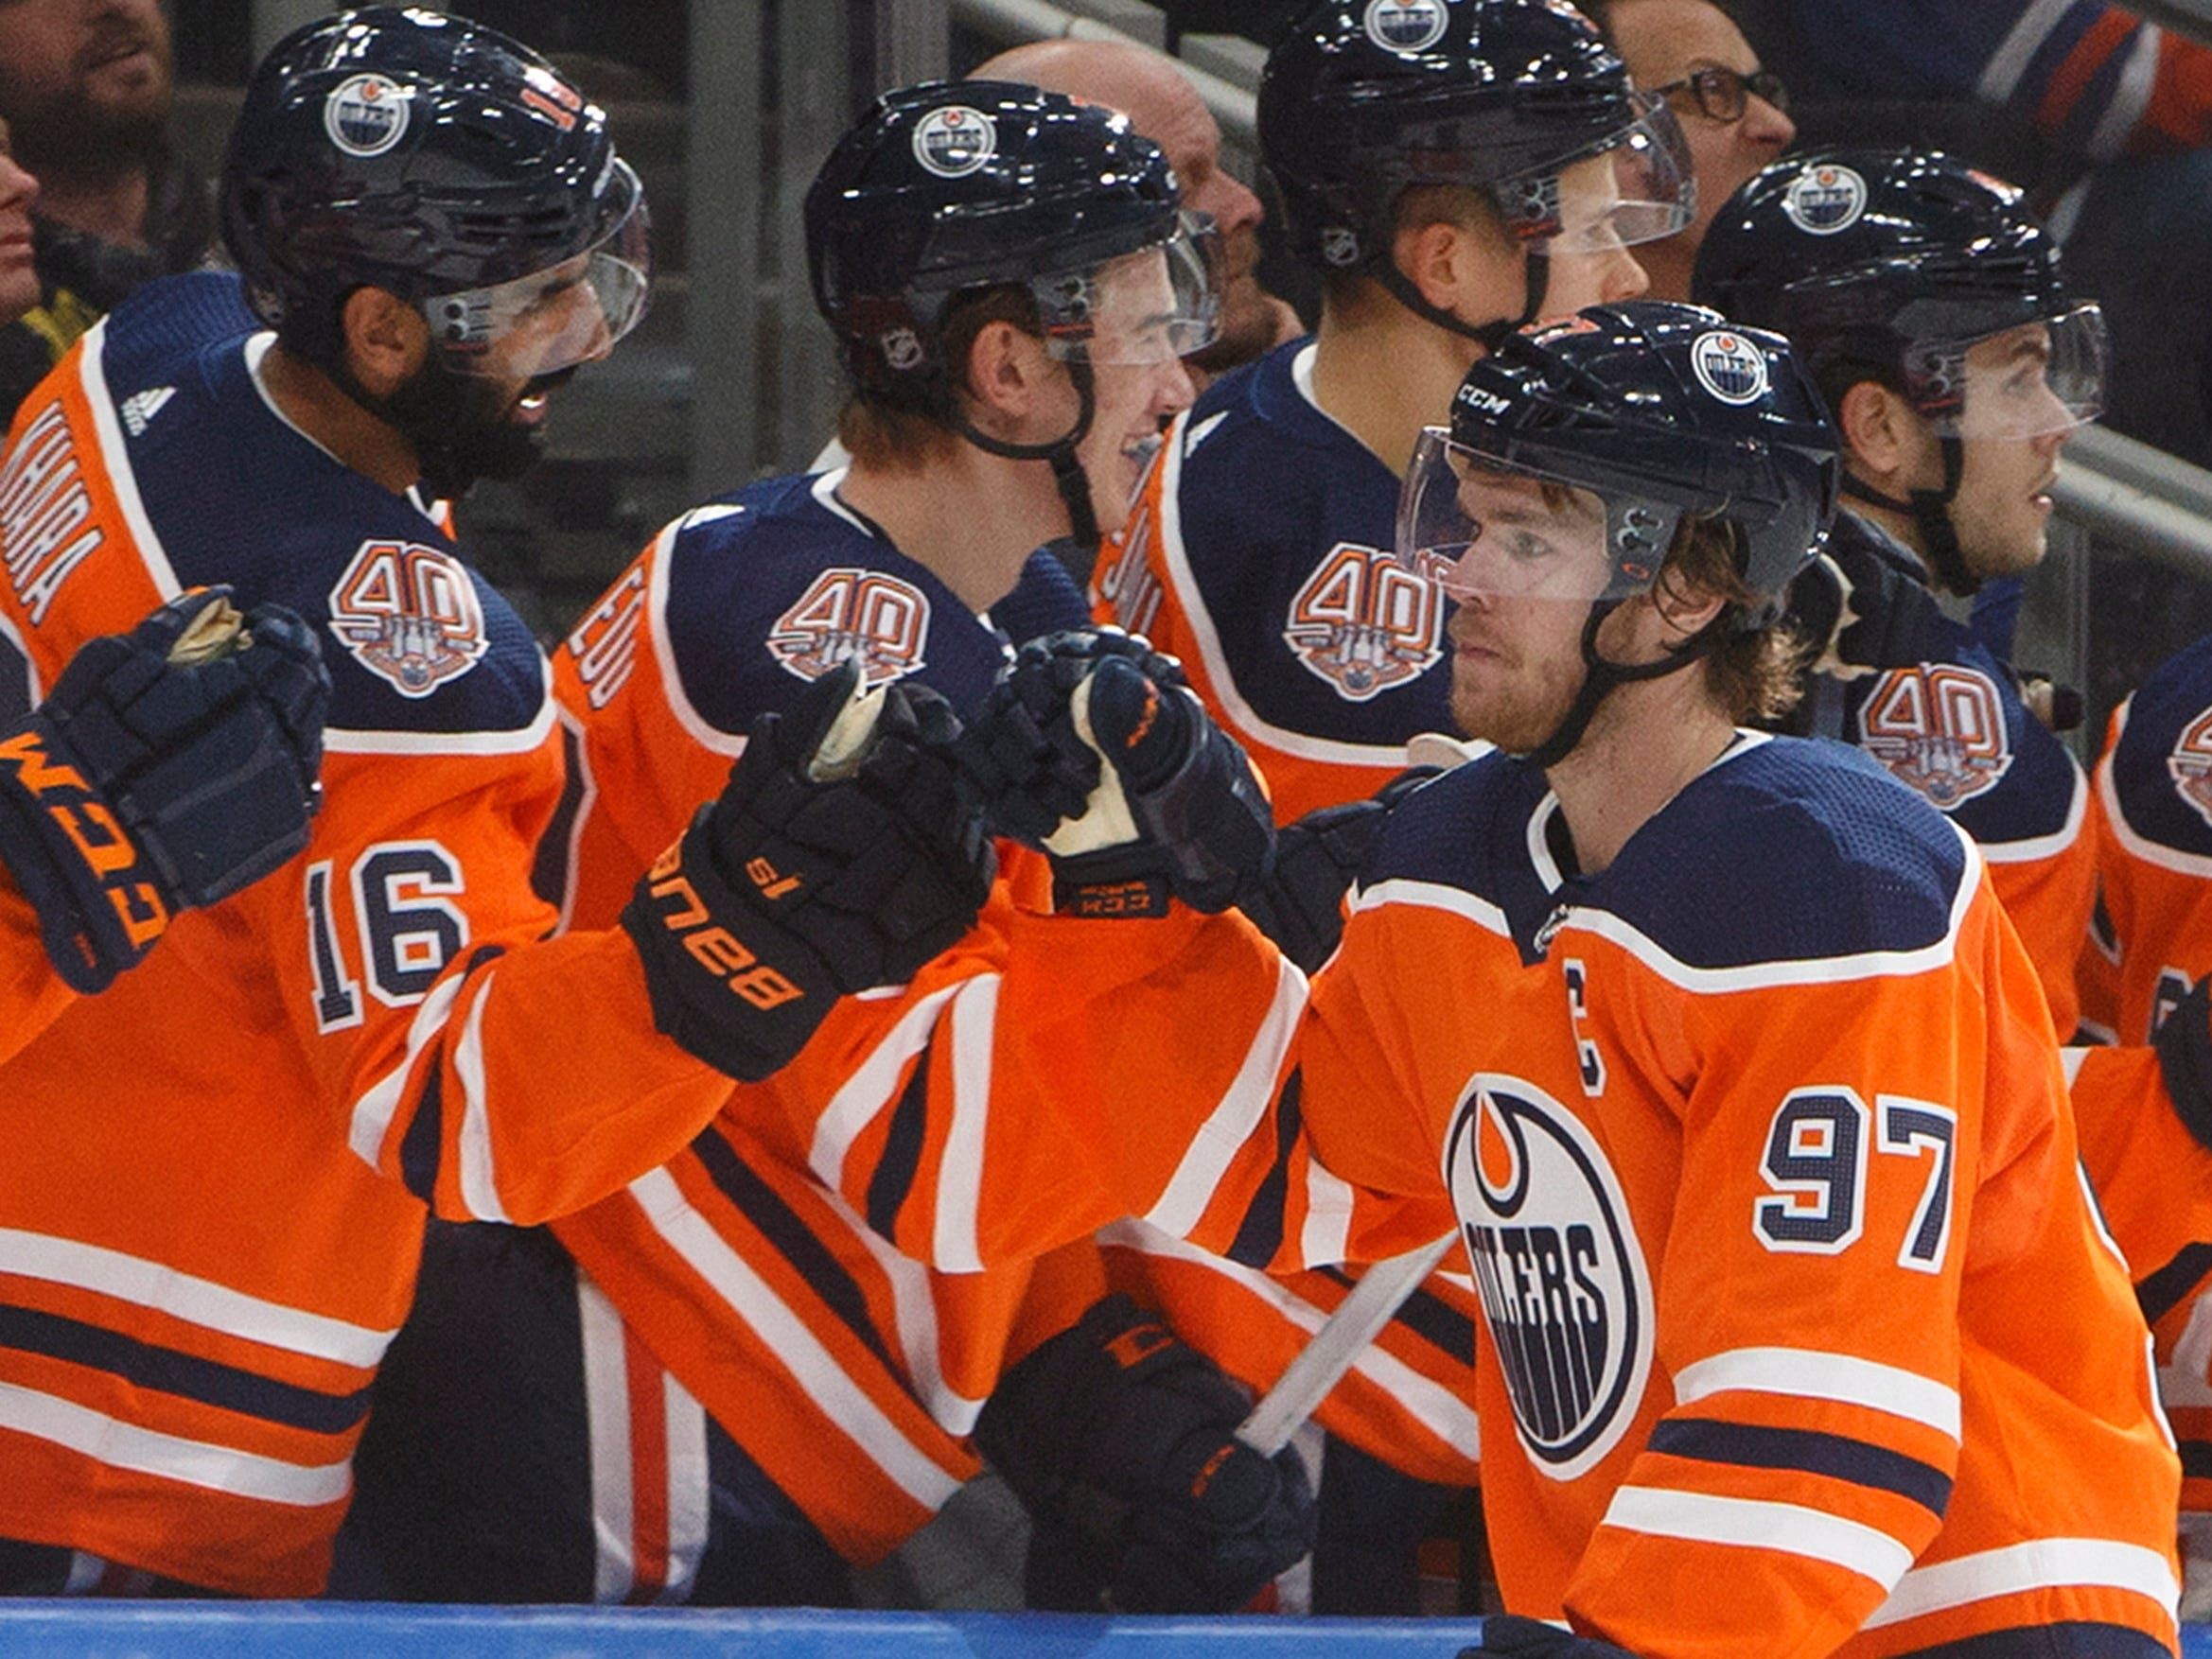 Sept. 20: Edmonton Oilers star Connor McDavid (97) celebrates a third-period goal against the Winnipeg Jets. He added three assists in the 7-3 win.